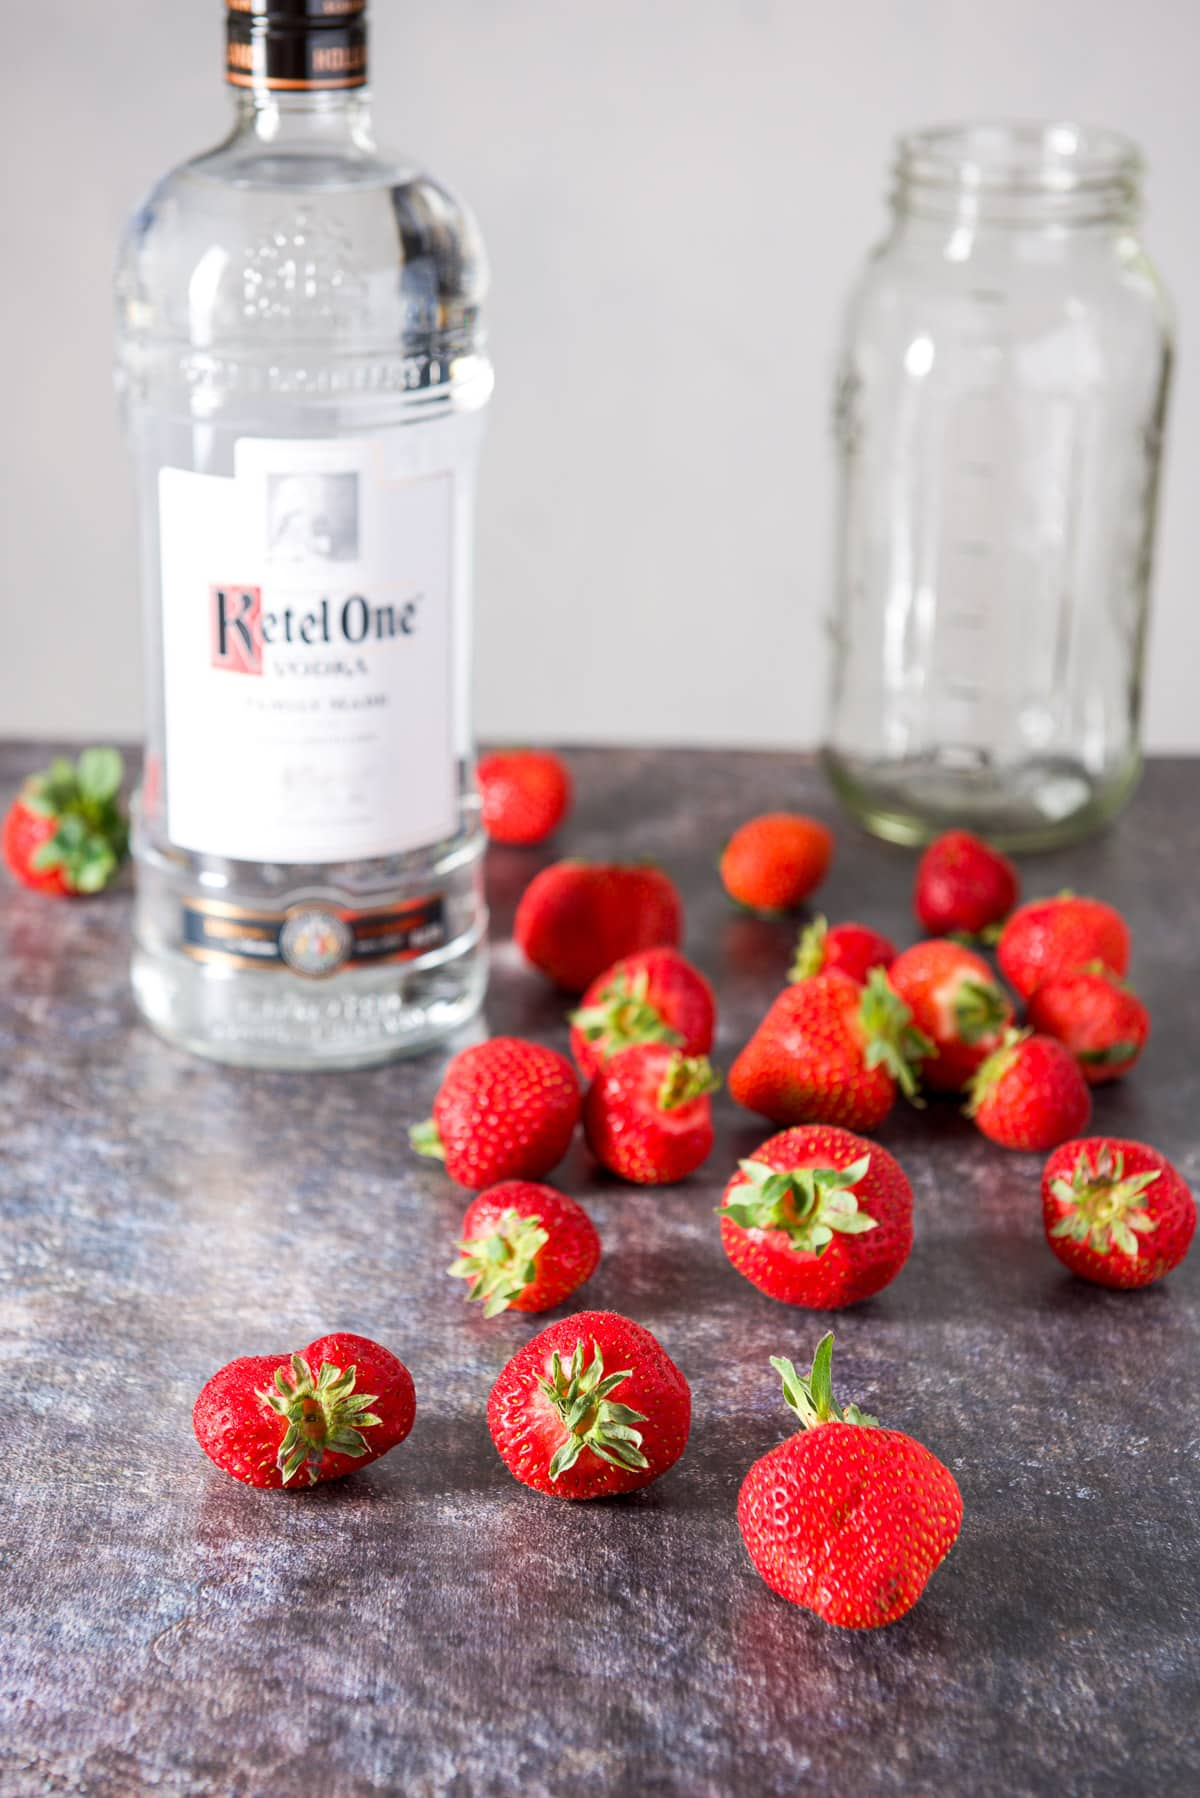 Strawberries on a table with a bottle of vodka along with a large jar